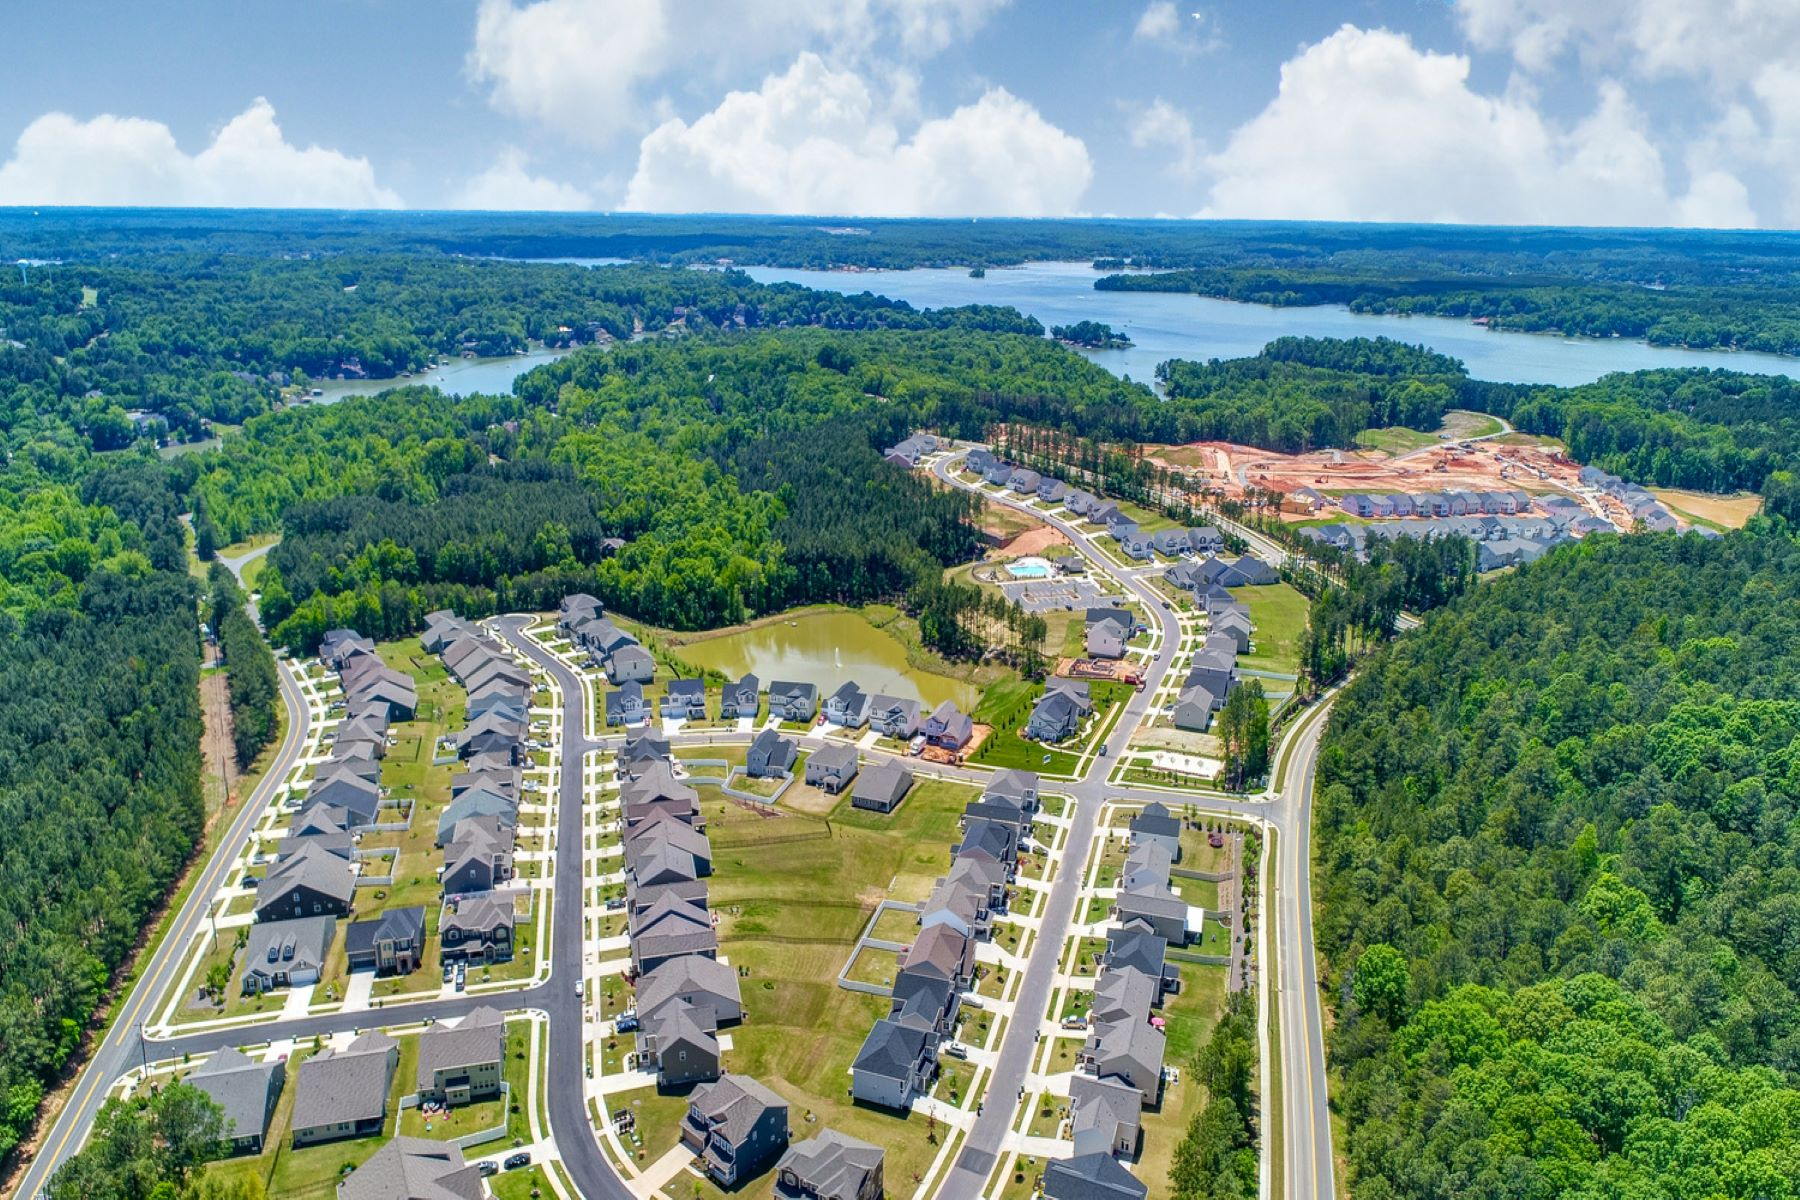 Ridgewater CLT_RDW_Overhead_with_Lake_1800x1200 in Charlotte North Carolina by Mattamy Homes